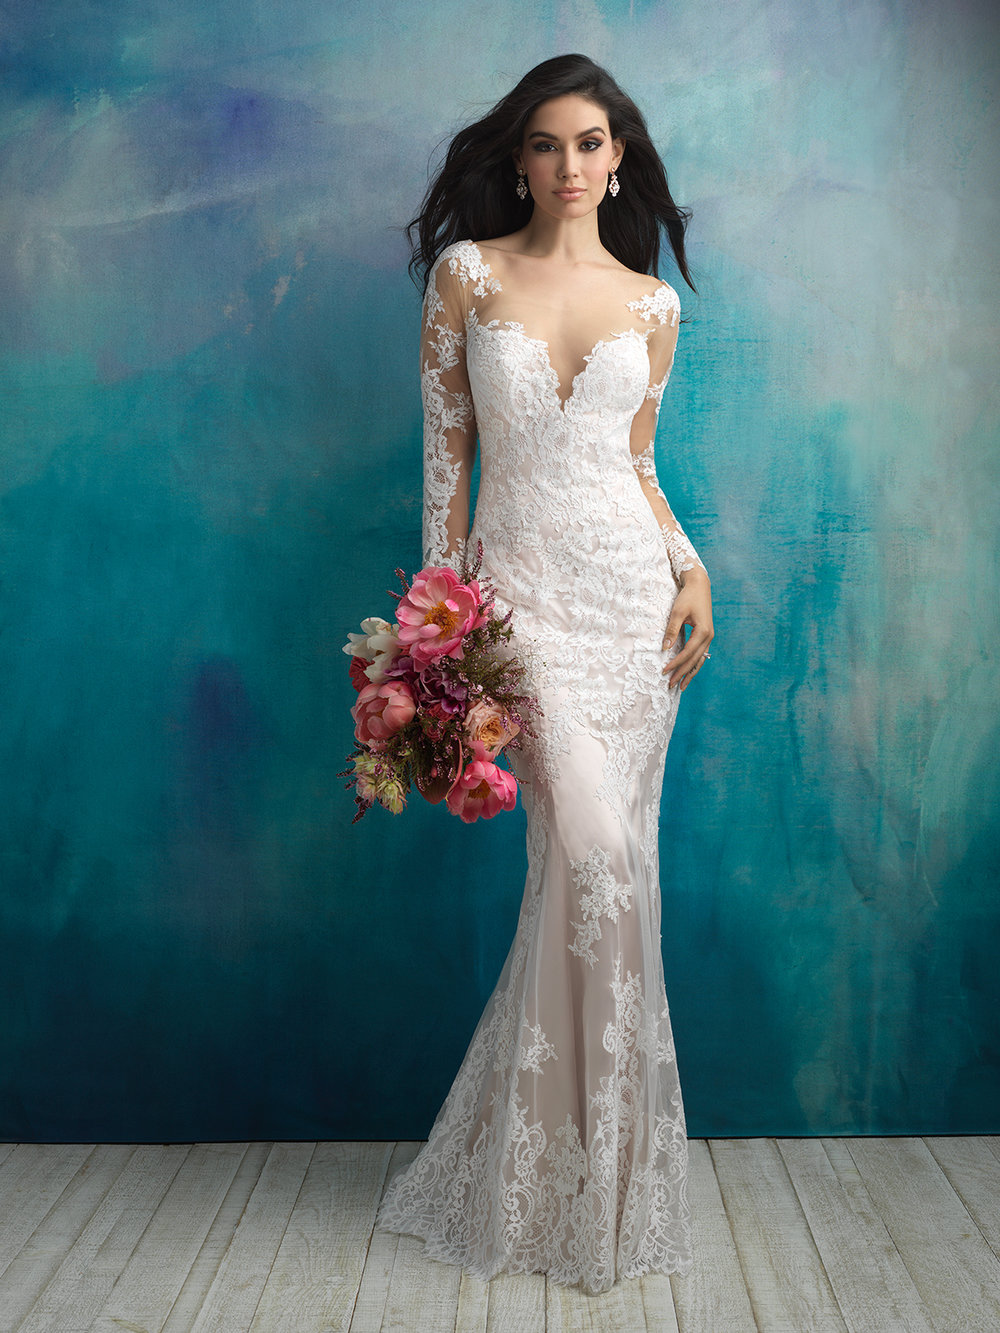 Style 9506 - Winding vines and flowers cover the sheer illusion sleeves of this lace sheath.